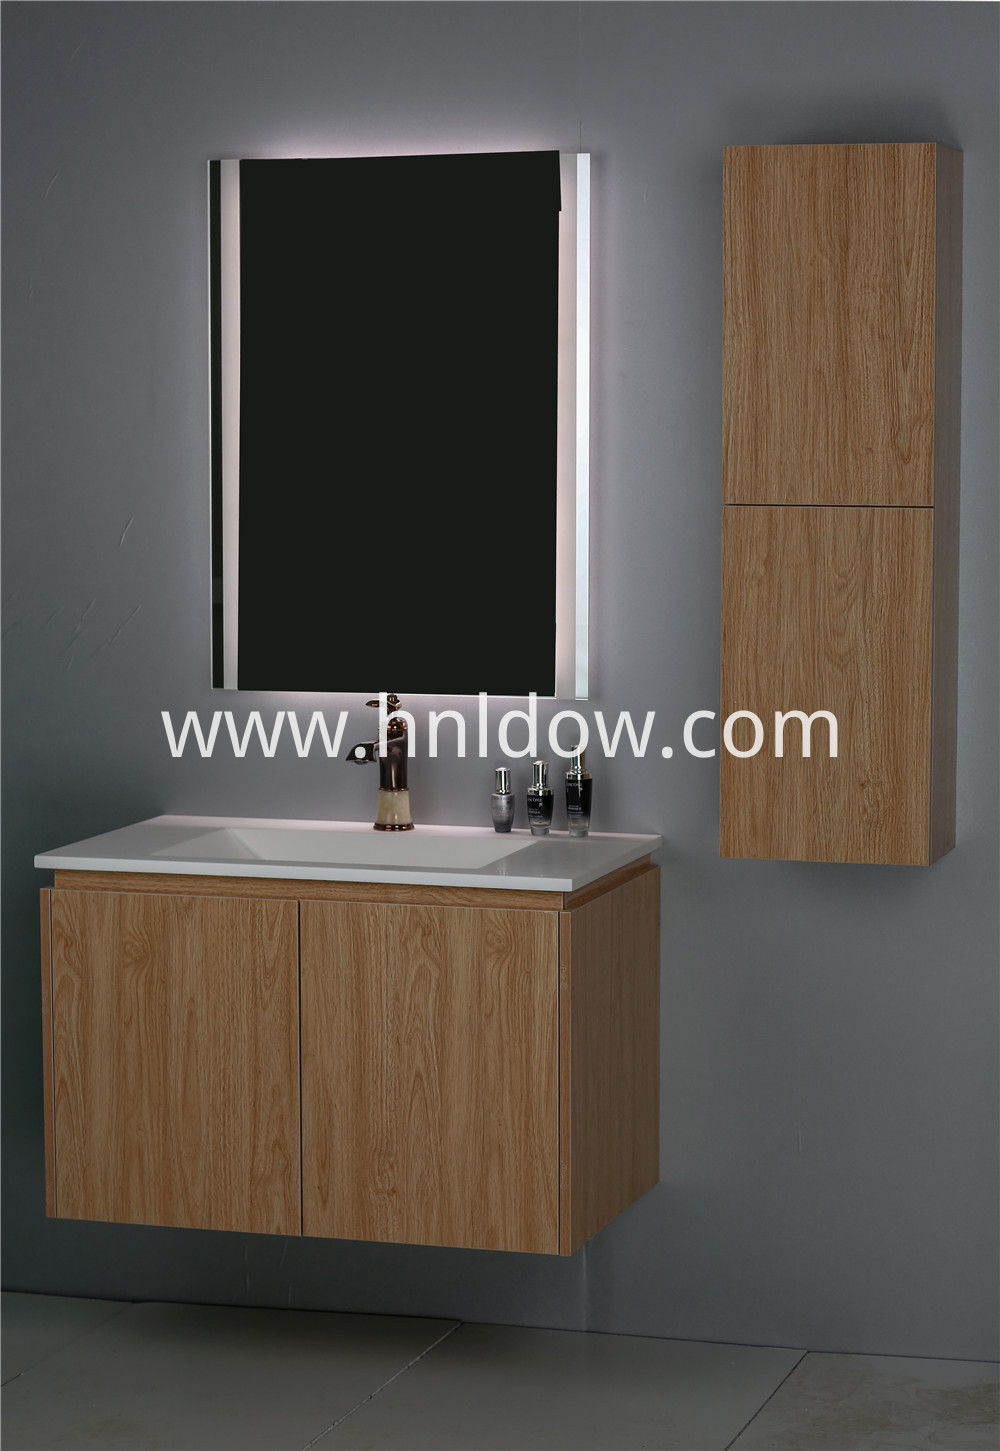 bathroom mirror for wall